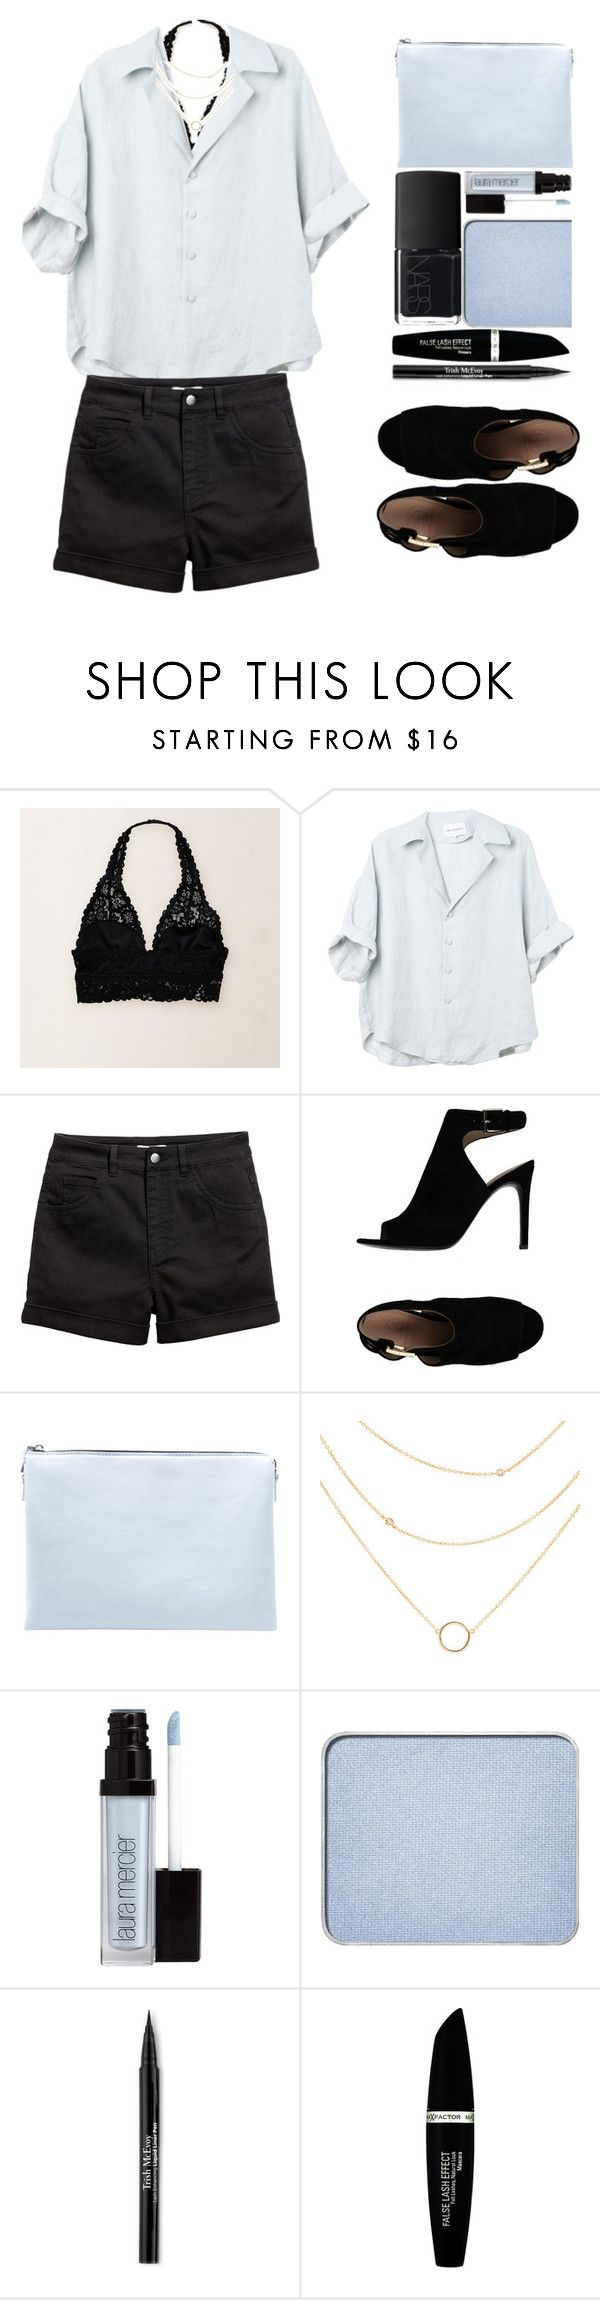 """Light Blues & Black Bralettes"" by jyellow-11 ❤ liked on Polyvore featuring Aerie, Tory Burch, MANGO, Laura Mercier, shu uemura, Trish McEvoy, Max Factor and NARS Cosmetics"